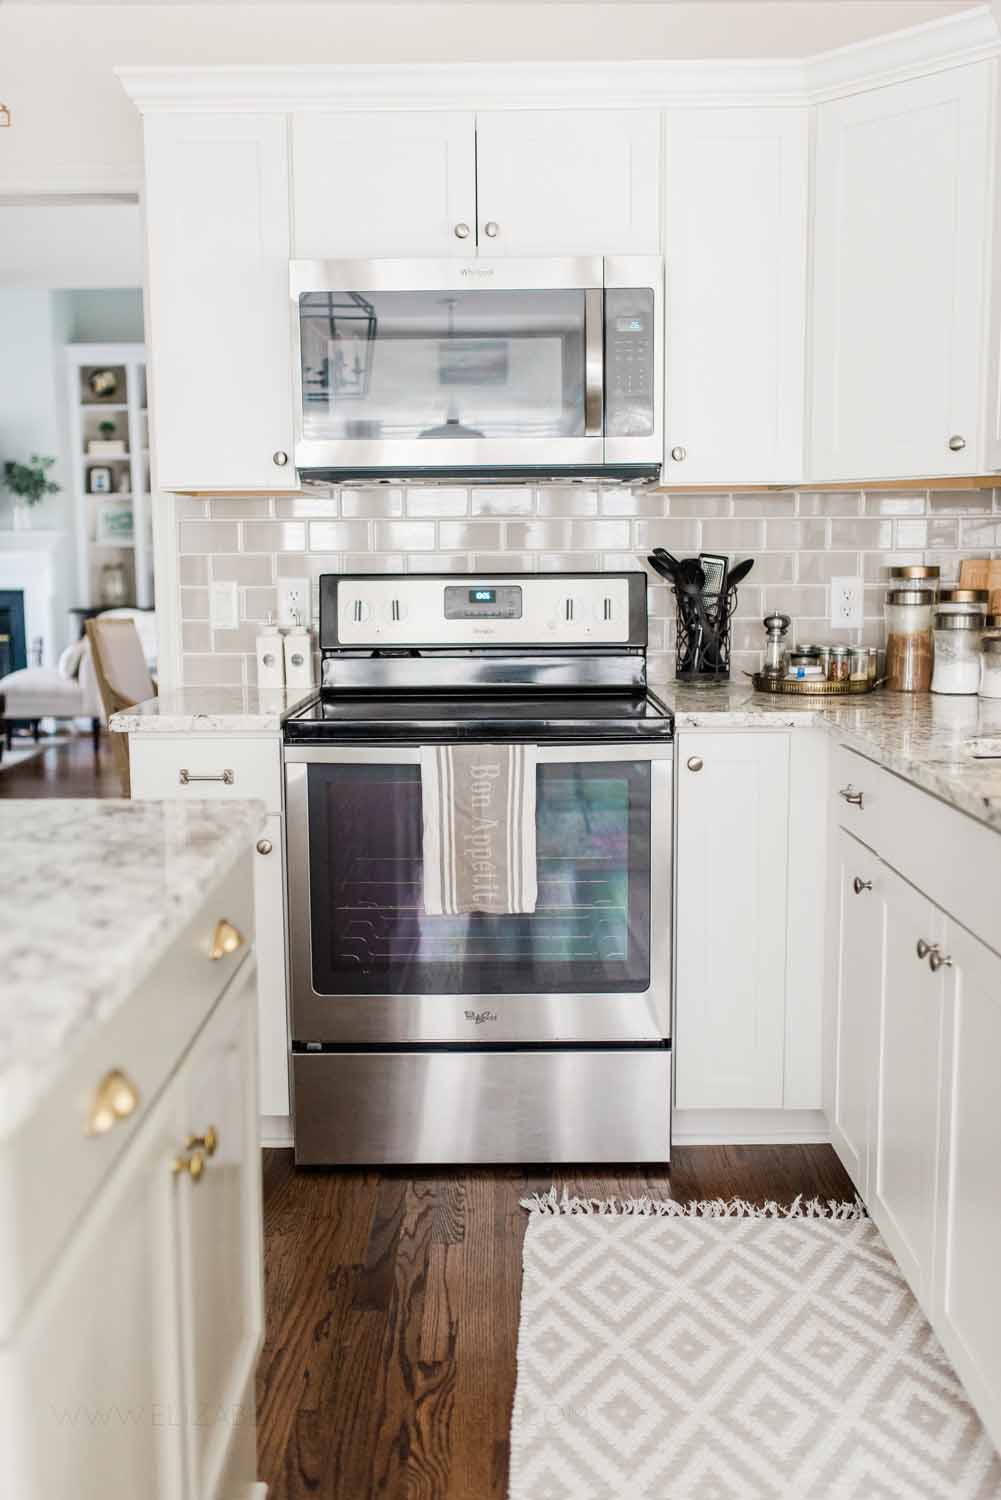 Elizabeth Burns Design Raleigh Interior Designer 1990s house remodel before and after Benjamin Moore Classic Gray 1548 Arcadia White Shaker Cabinets Gray Subway Tile Backsplash (8).jpg